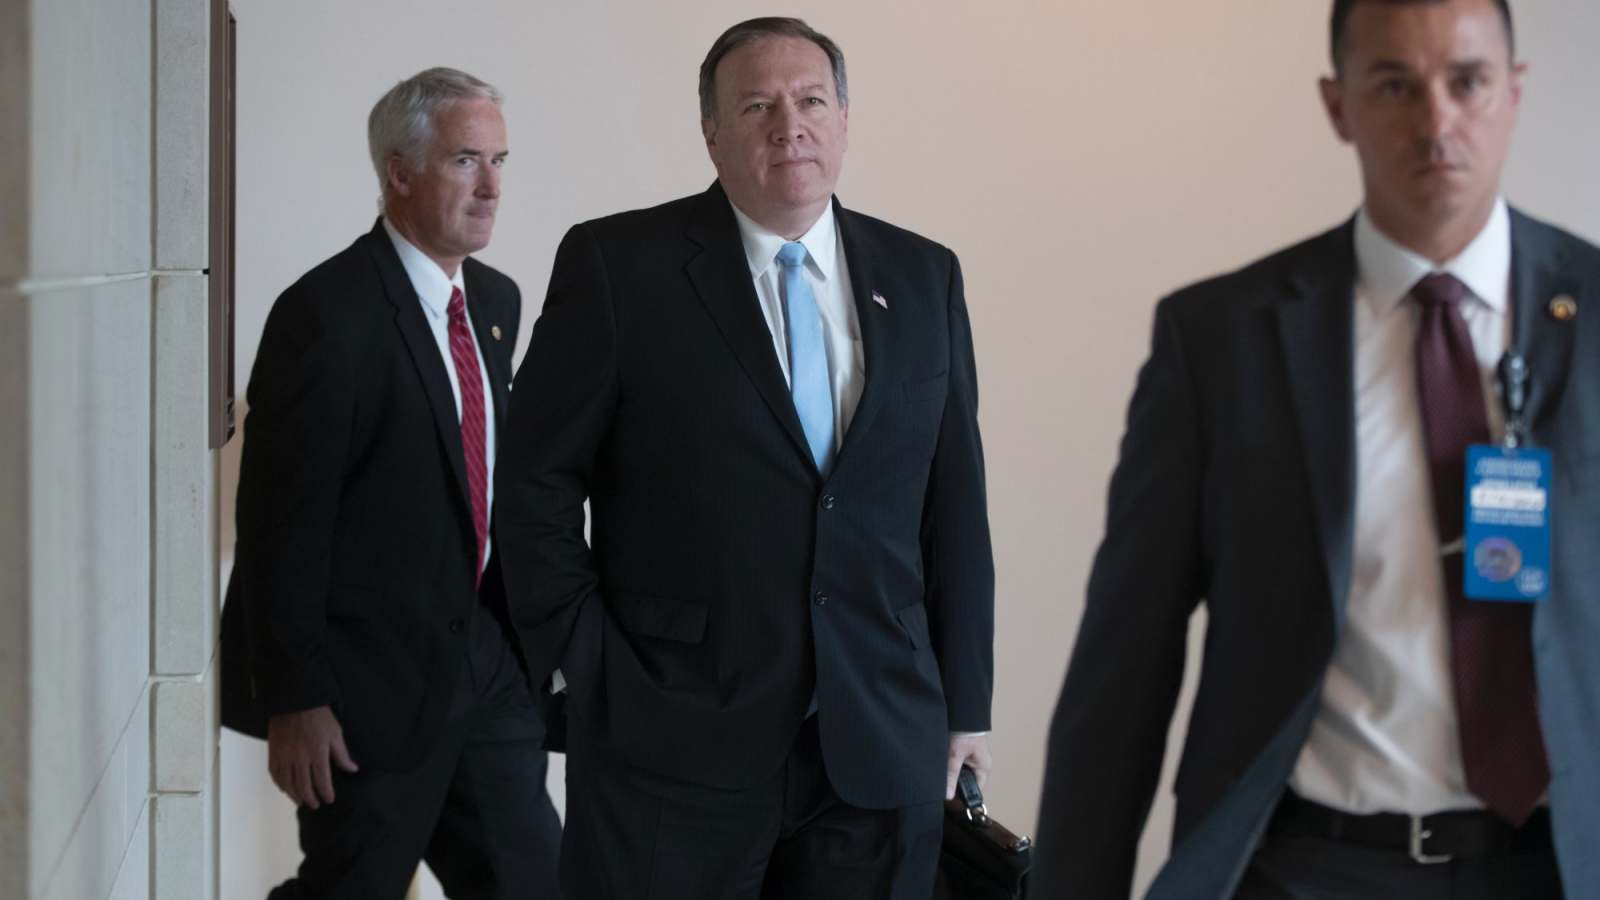 CIA Director Mike Pompeo, centre, has criticised any nuclear deal with Iran.